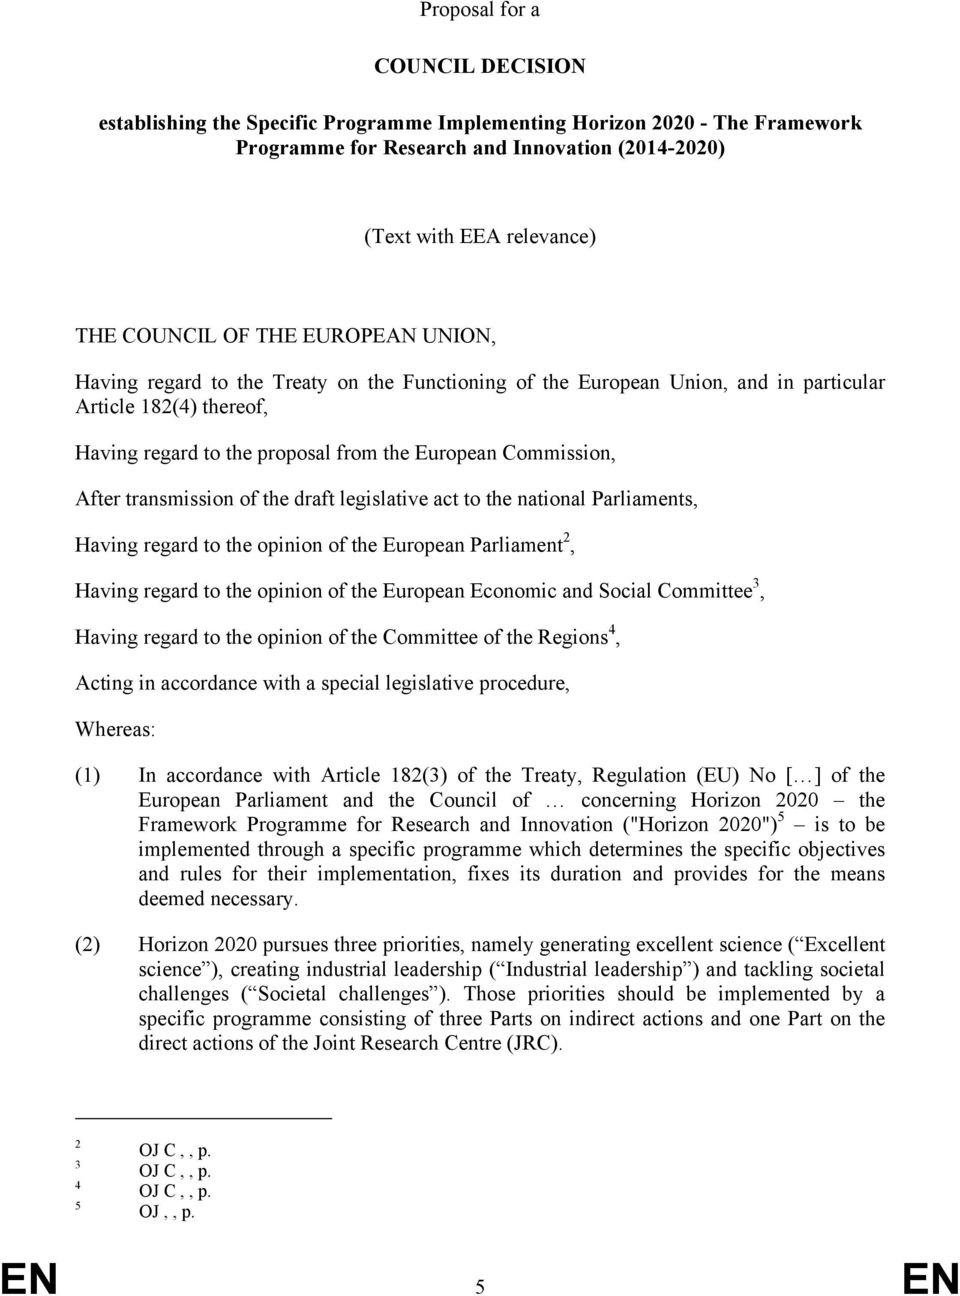 After transmission of the draft legislative act to the national Parliaments, Having regard to the opinion of the European Parliament 2, Having regard to the opinion of the European Economic and